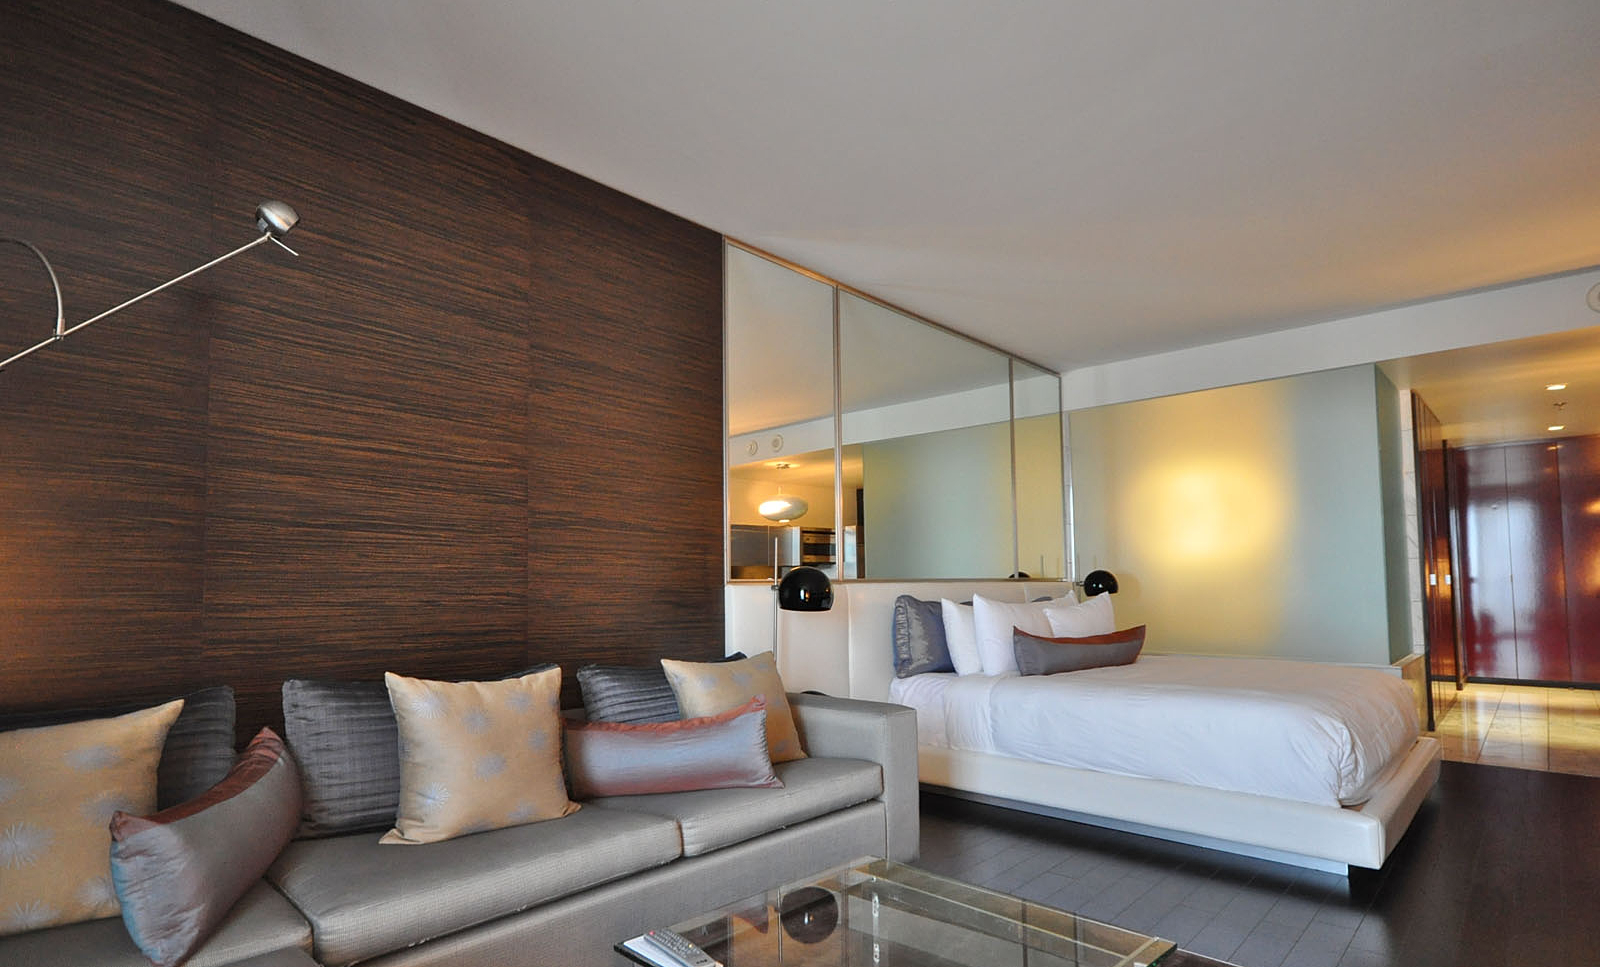 Palms Place 2 Bedroom Suite Airpadscom Search To Stay In One Of Our Plush Accomodations